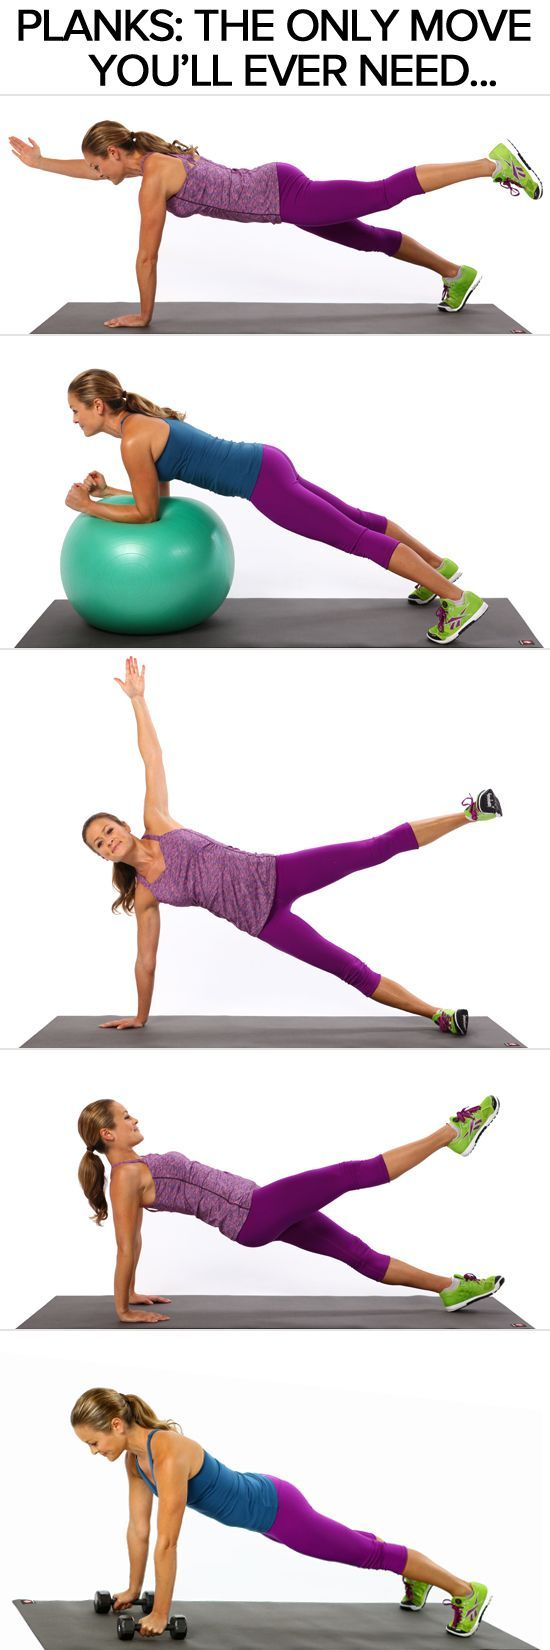 Planks: The Only Move You'll Ever Need